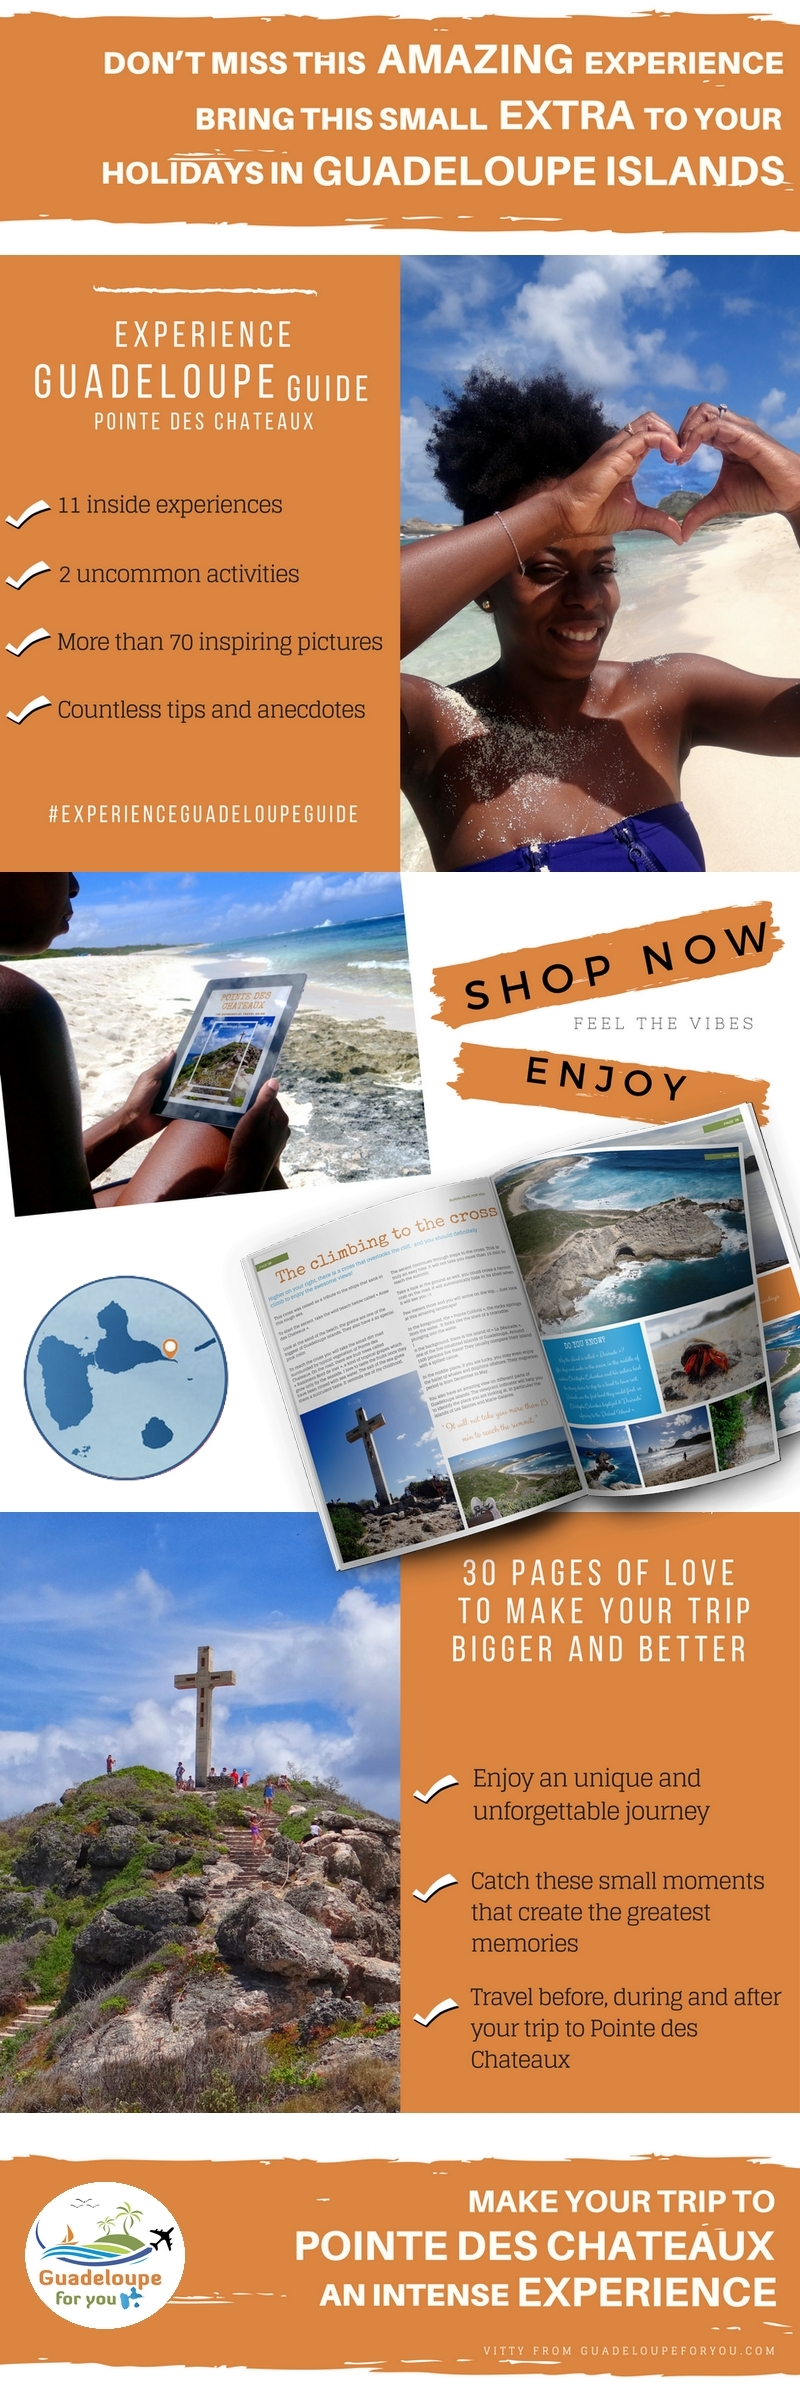 experience guadeloupe guide - downloading